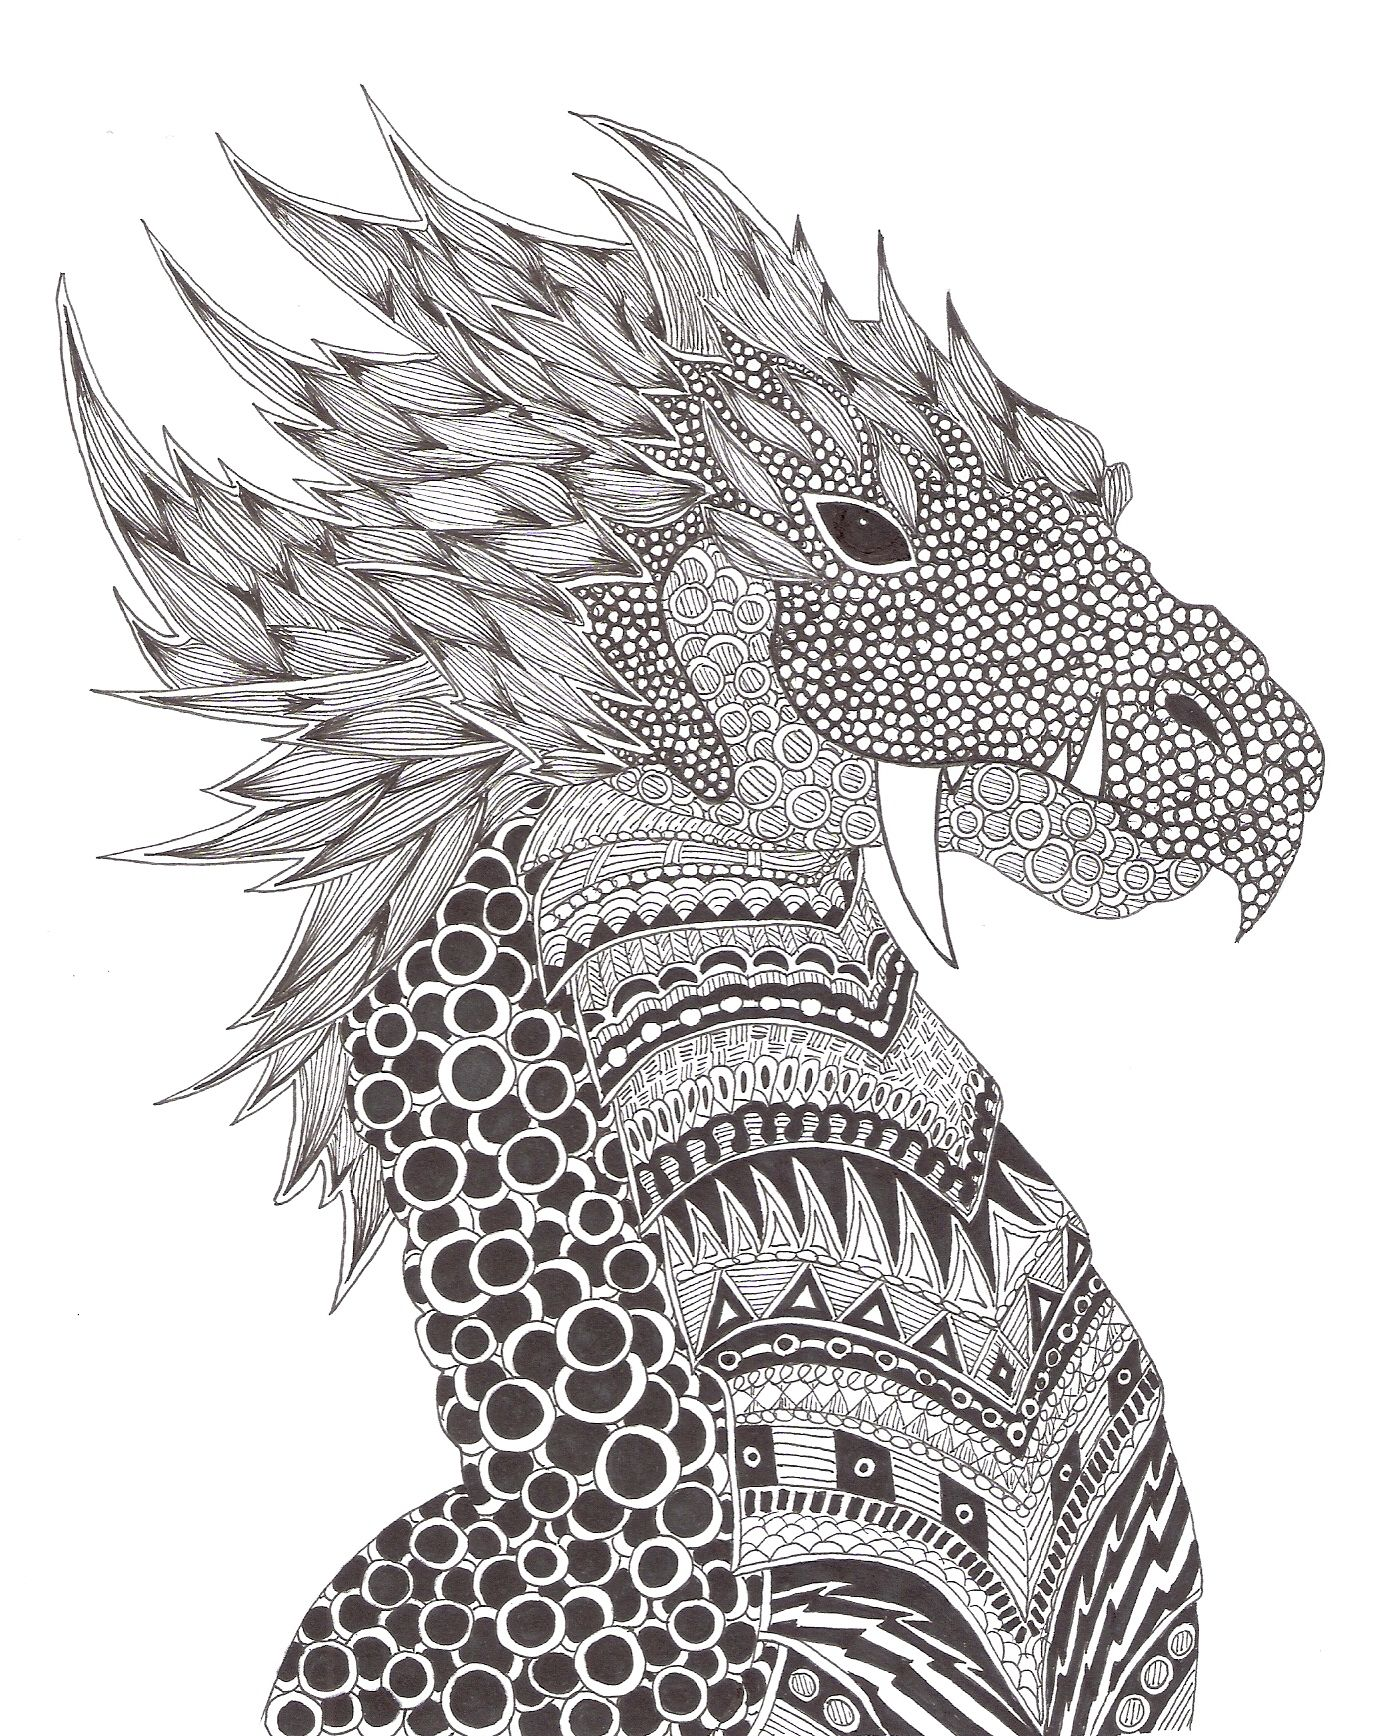 Zentangle Made By Mariska Den Boer 149